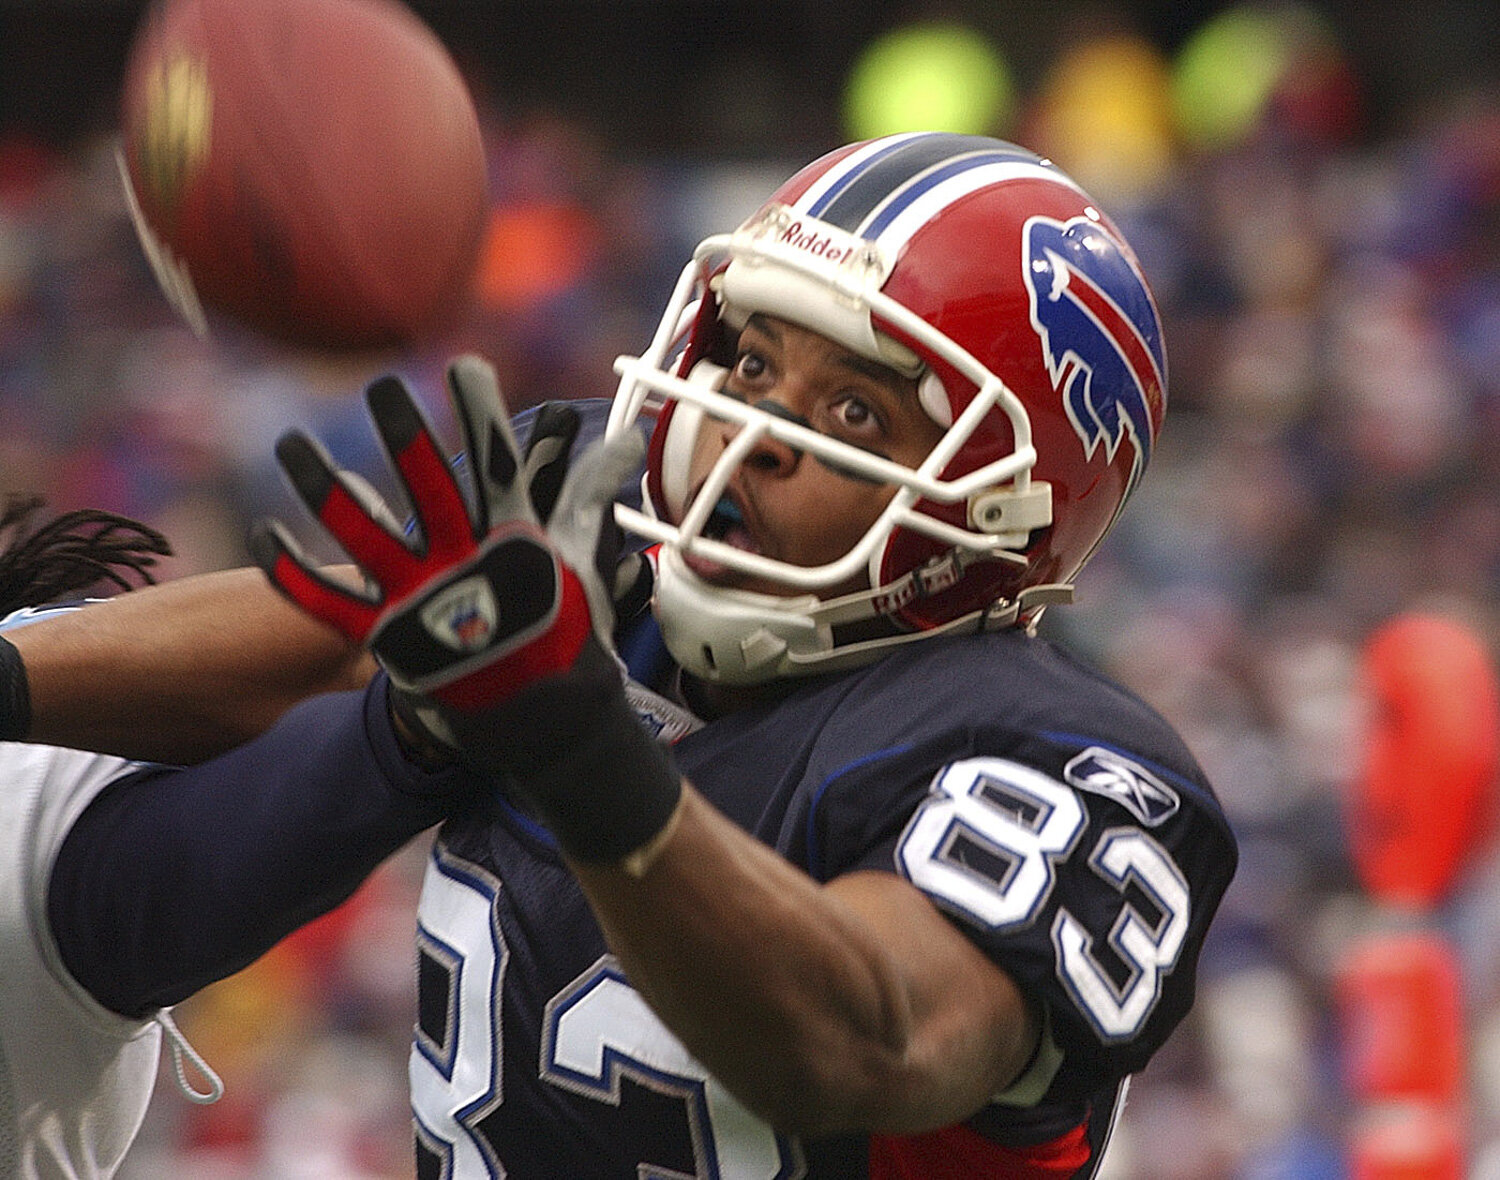 Buffalo Bills wide receiver Lee Evans watches as the ball just misses his hands in the final minutes of the second quarter against the Titans at Ralph Wilson Stadium in Orchard Park, NY on Dec. 24, 2006.